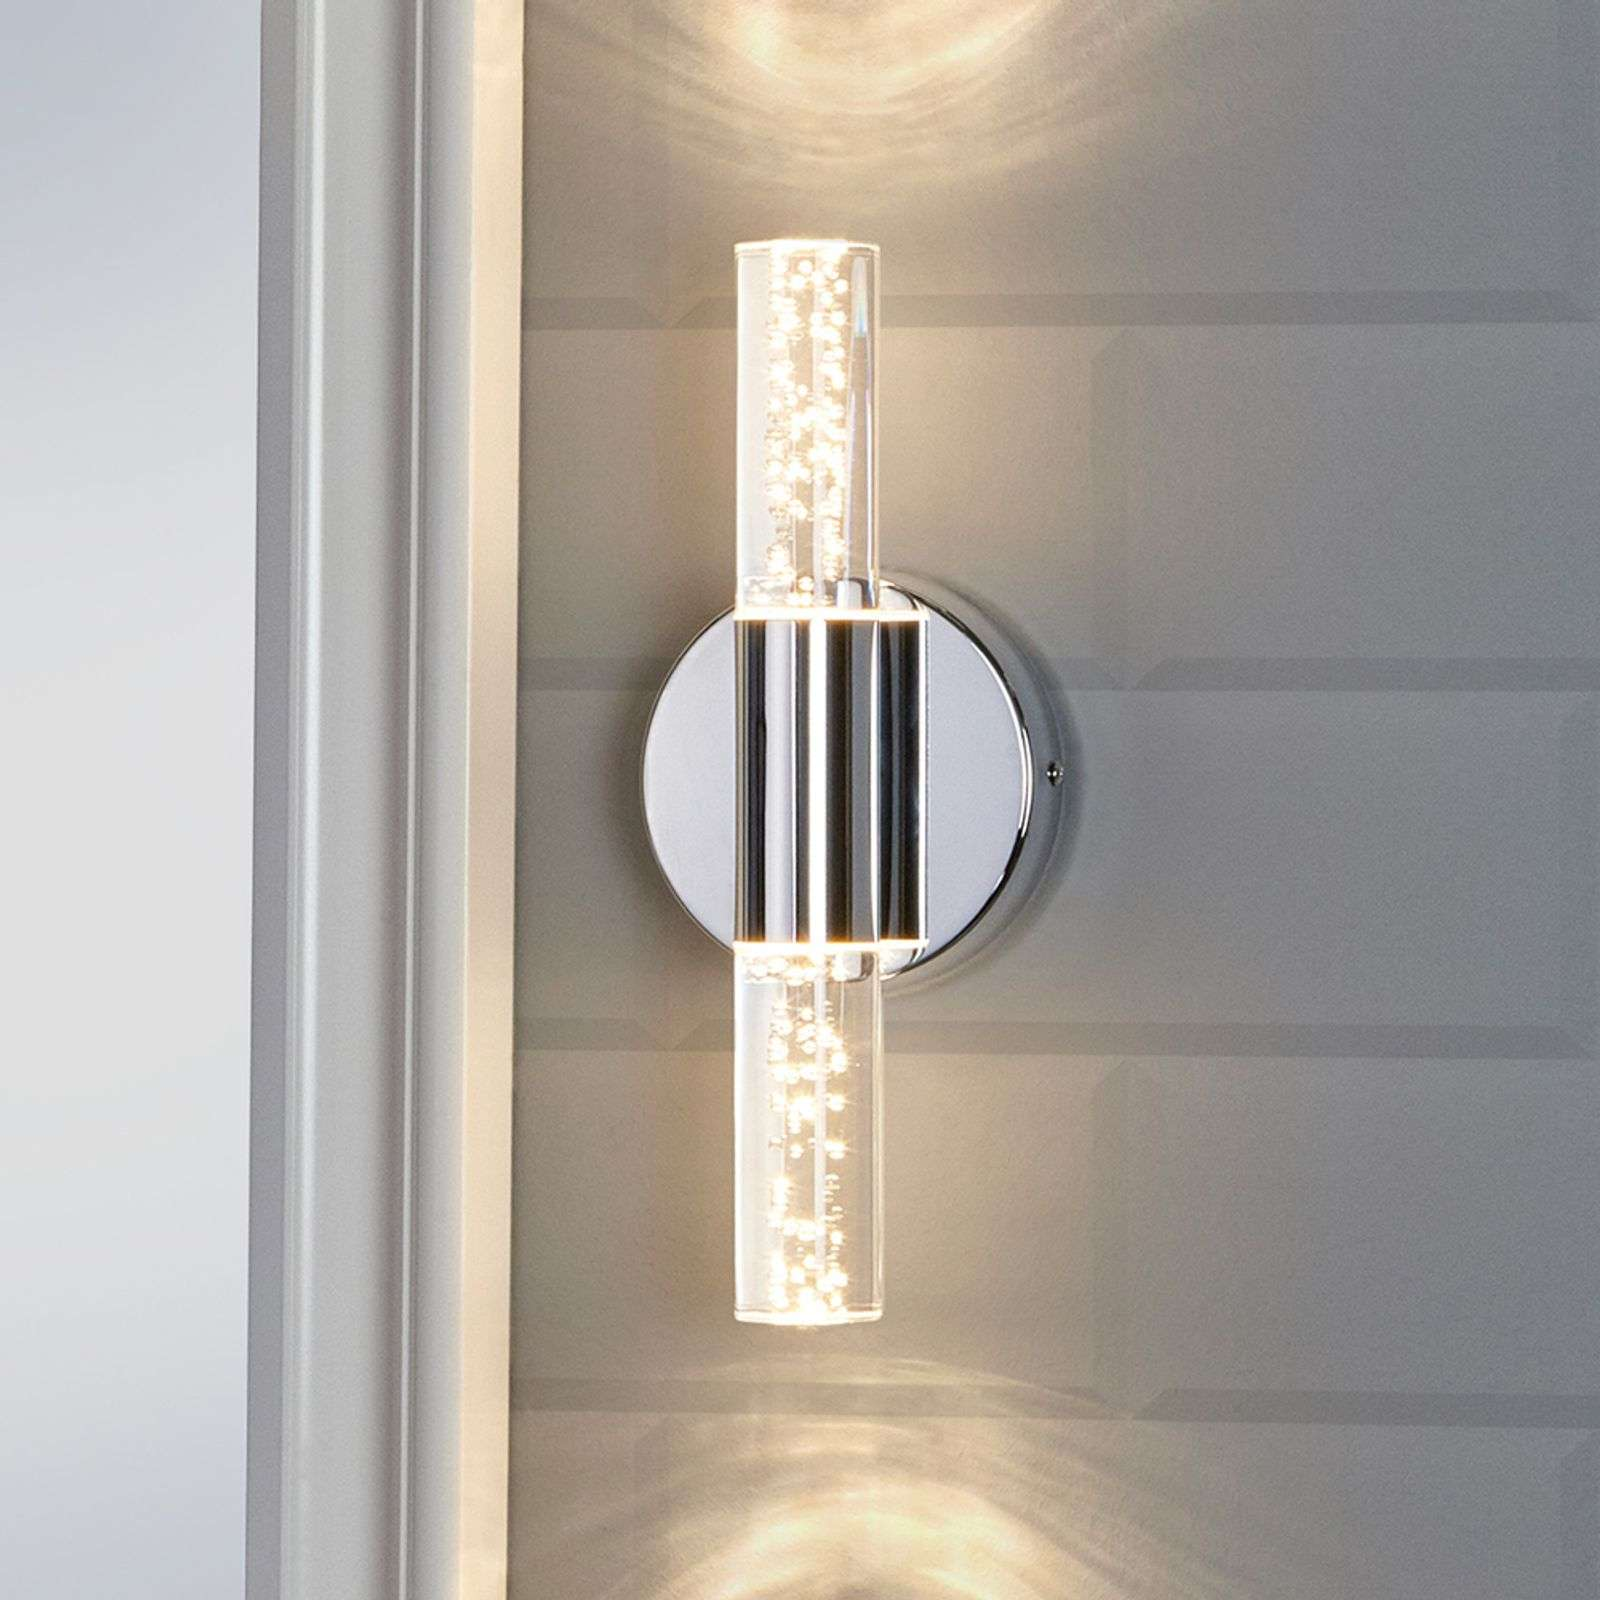 Duncan - applique LED per bagni